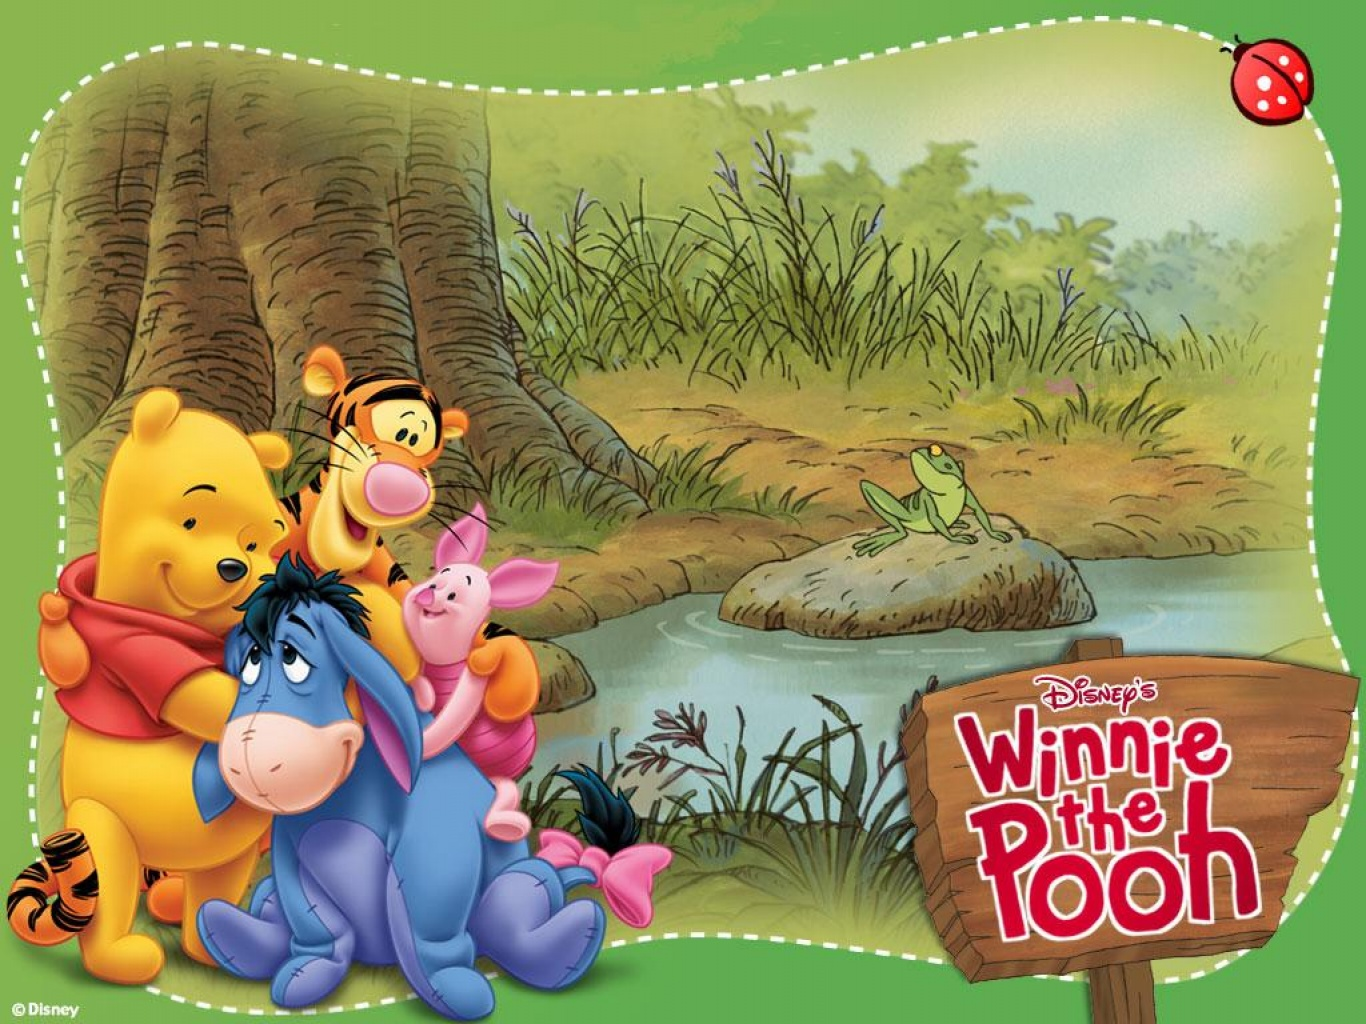 http://3.bp.blogspot.com/-LyYKPN5X0sc/TjDmdOkNnlI/AAAAAAAAAFU/IDiwcHBff3c/s1600/Wallpaper+free+download+Winnie+The+Pooh+and+his+friends.jpg